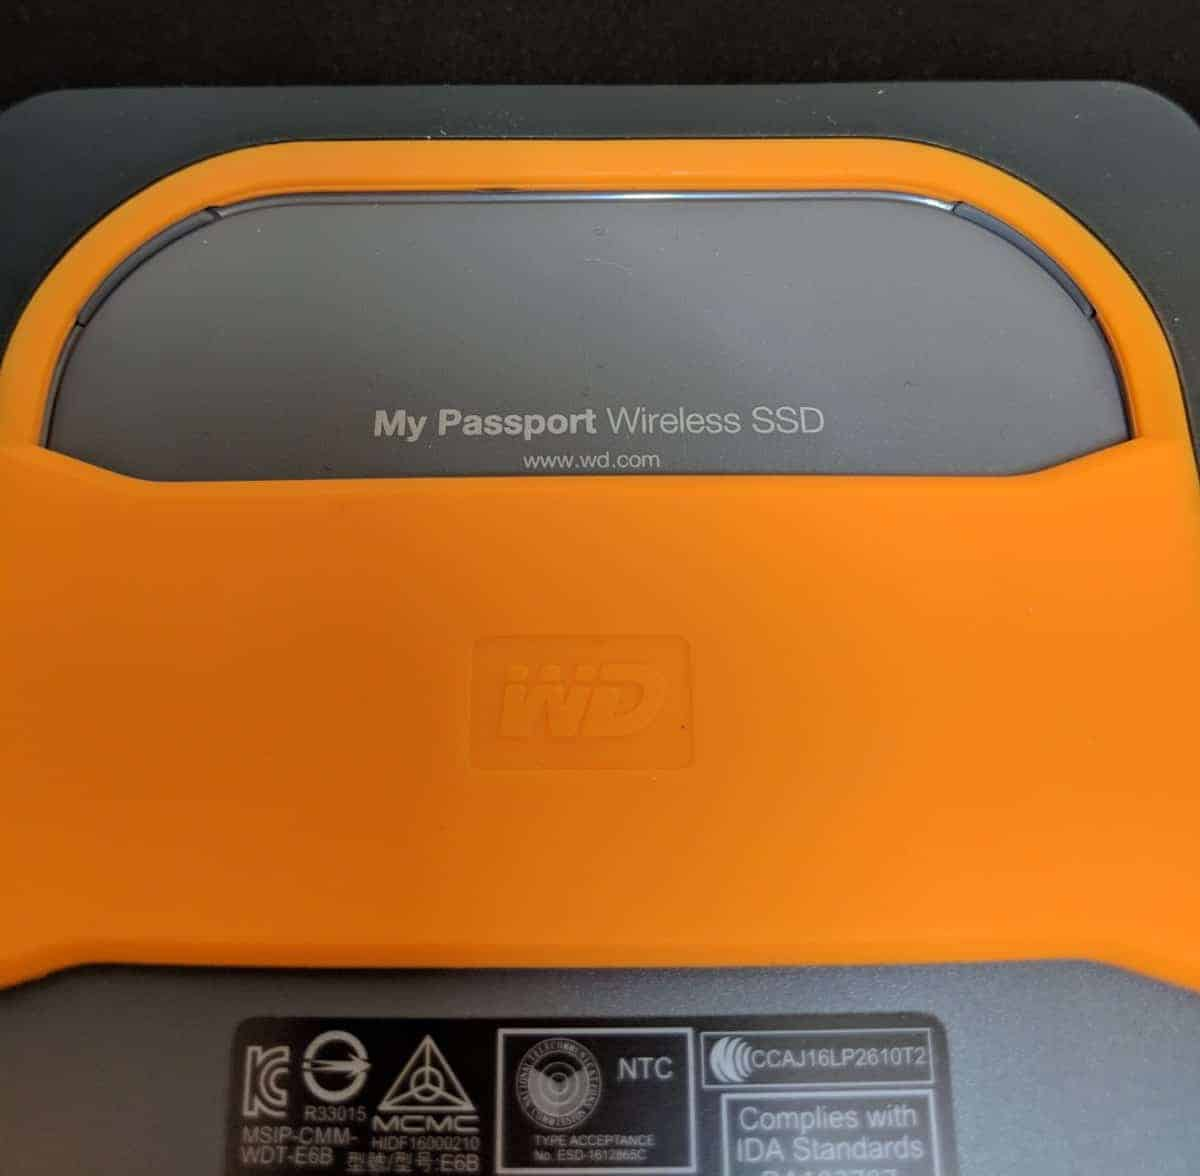 WD My Passport Wireless SSD Review - The Streaming Blog